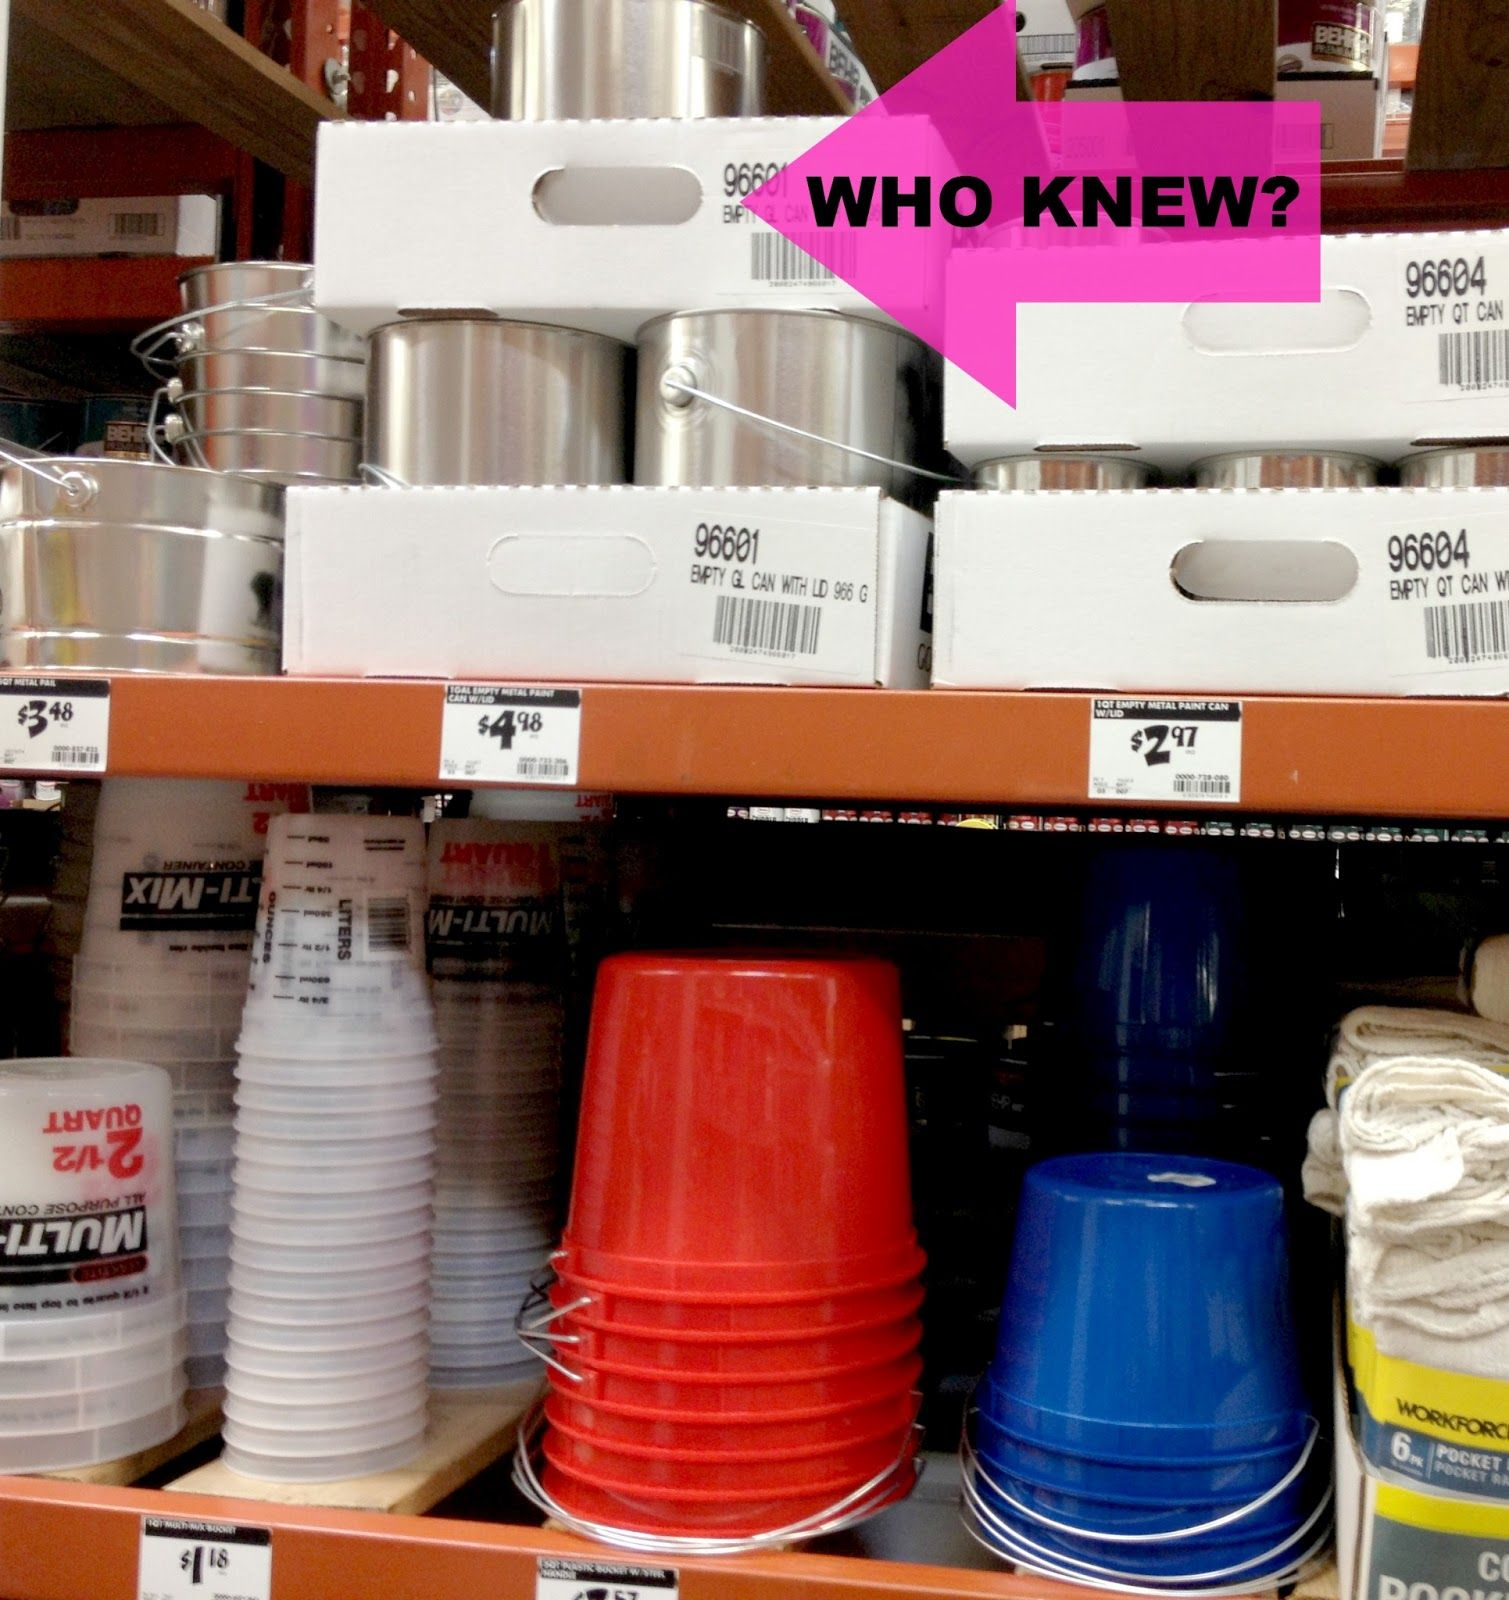 at Home Depot empty paint cans The gallon cans are about $4 and